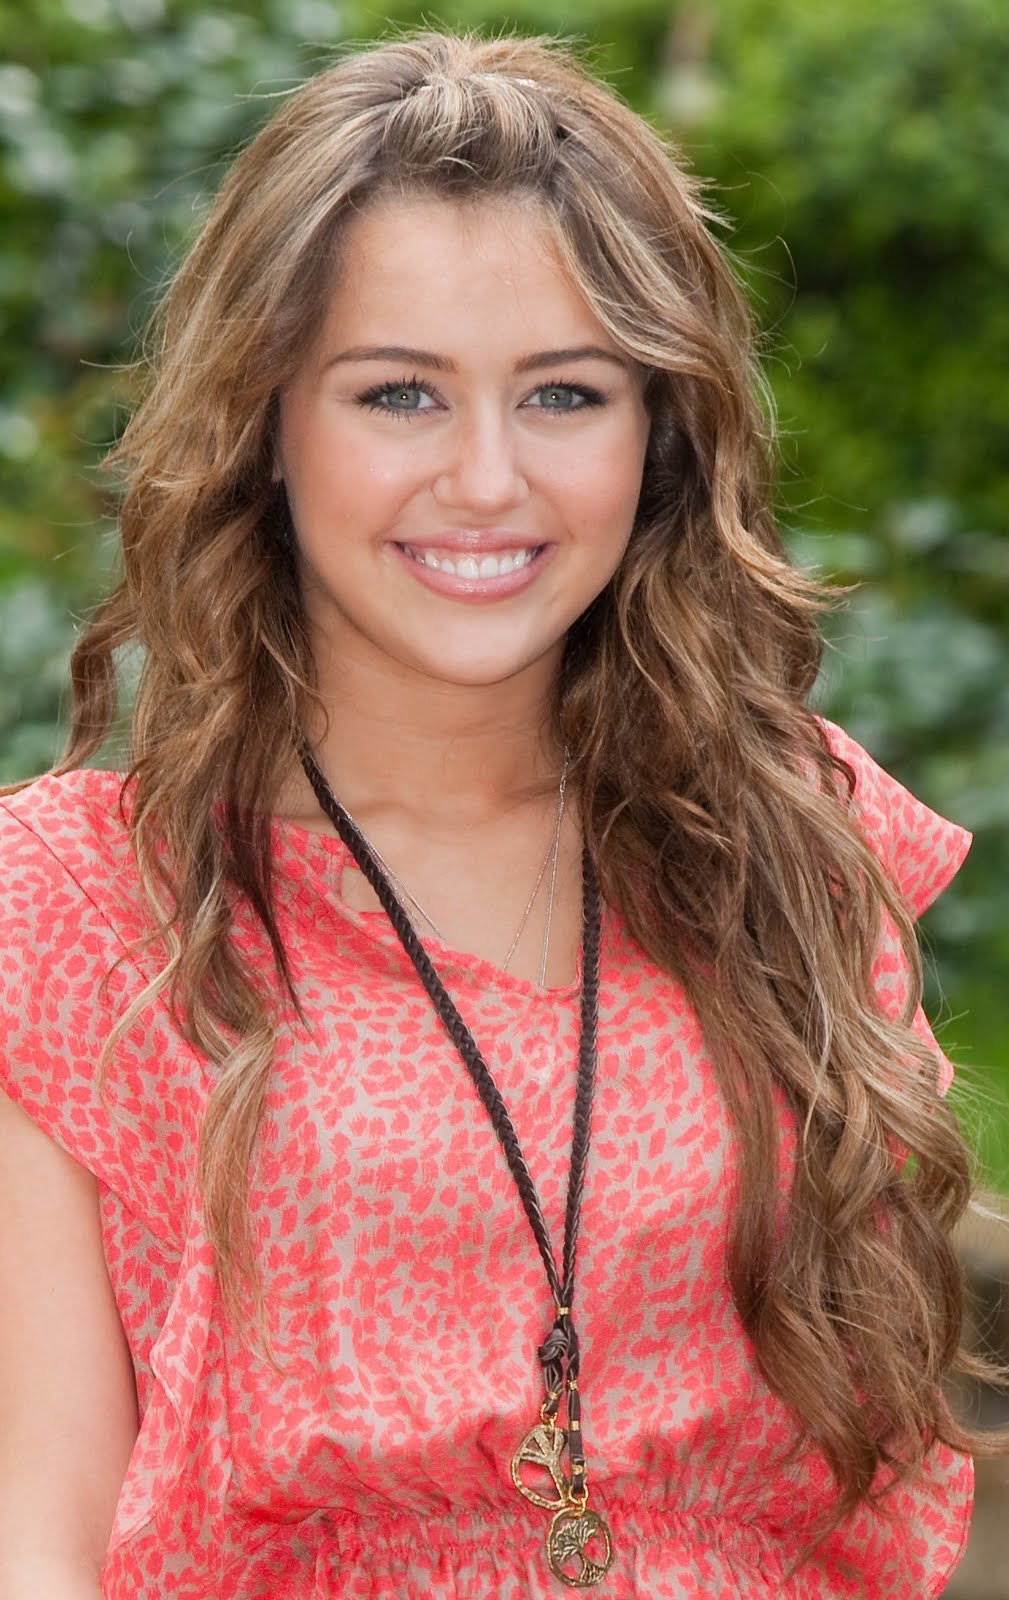 Free Miley Cyrus Hairstyles 2012 Guys Fashion Trends 2013 Wallpaper